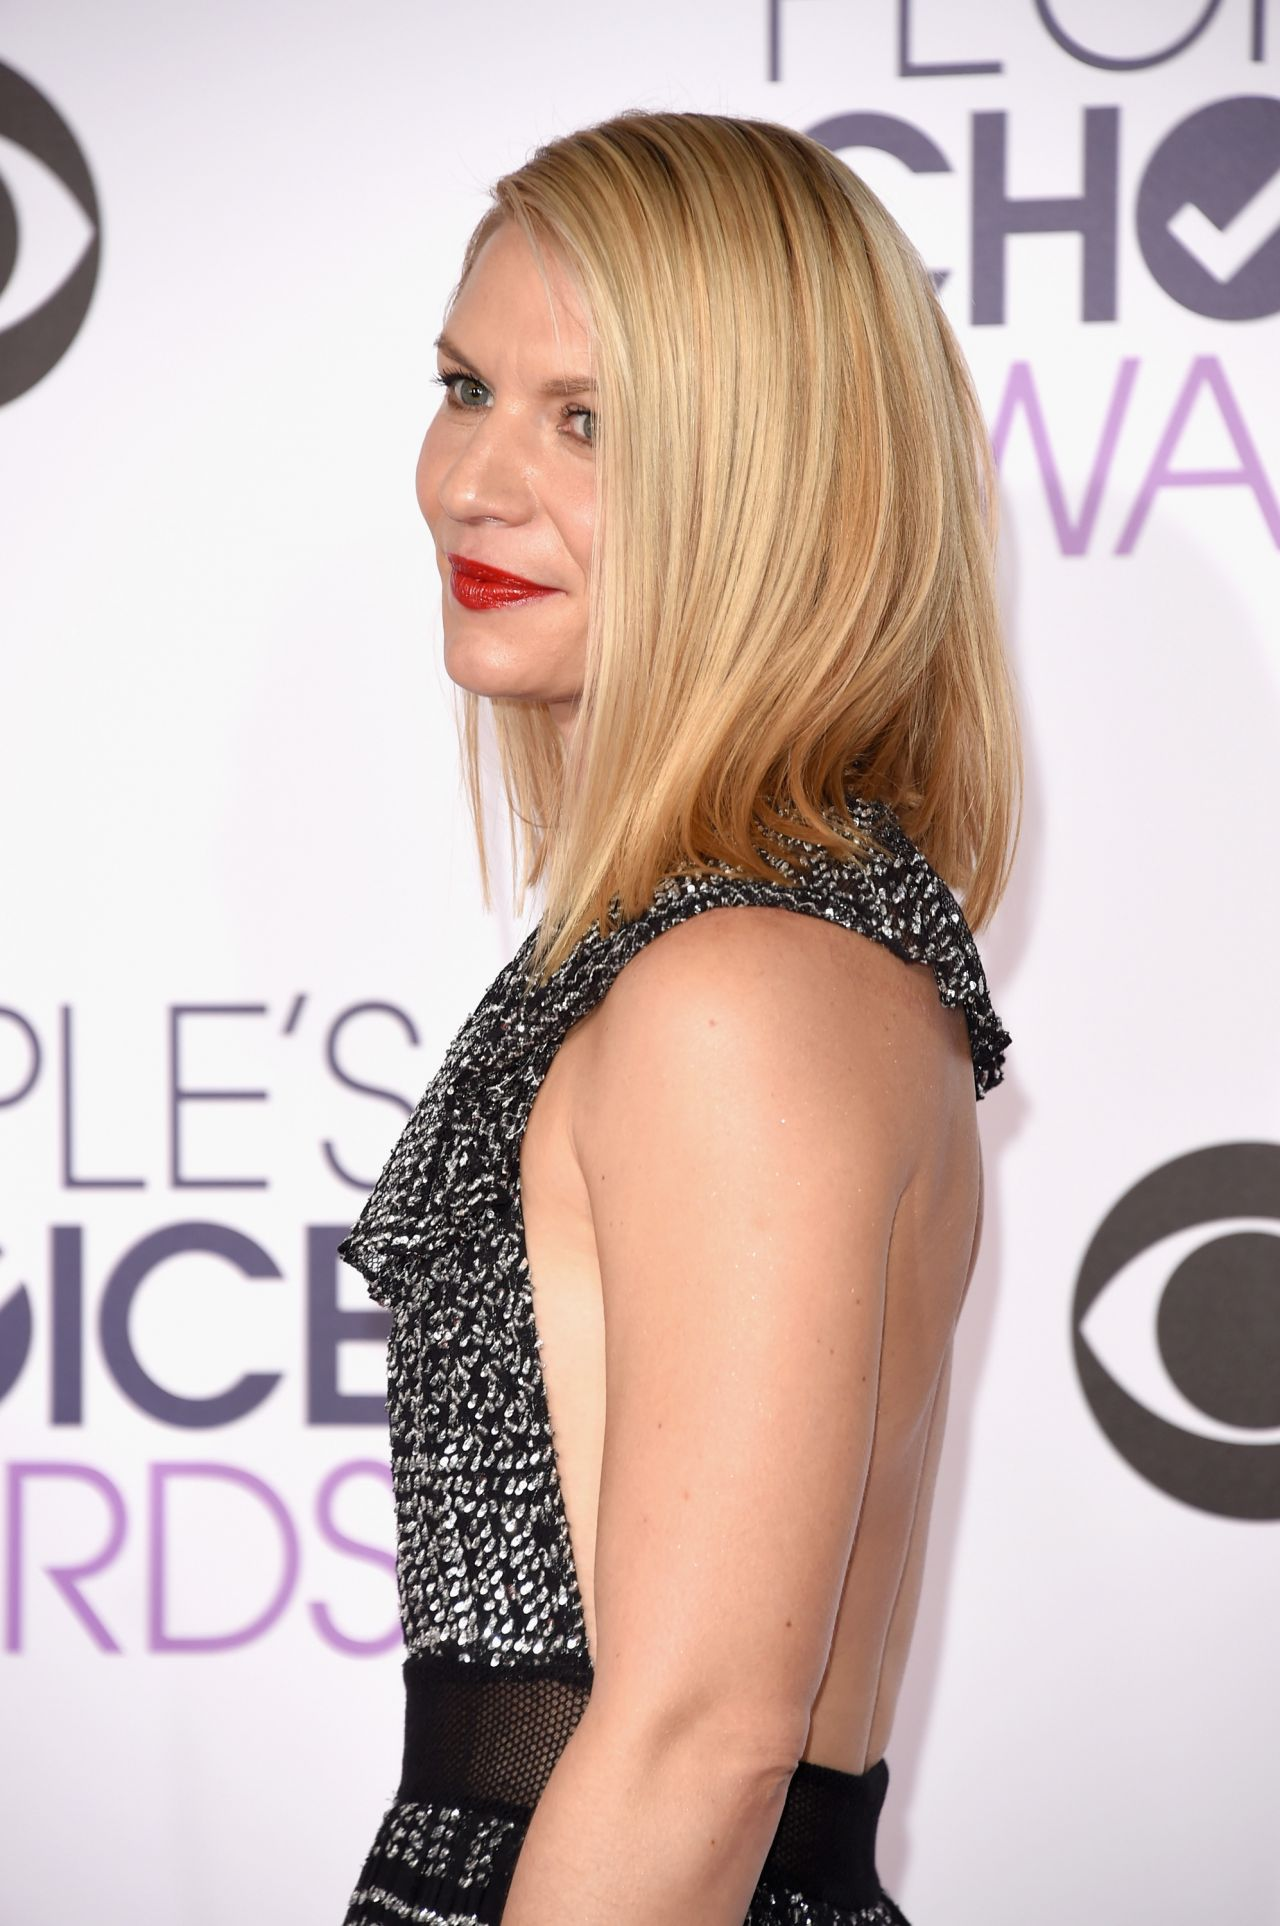 claire-danes-2016-people-s-choice-awards-in-microsoft-theater-in-los-angeles-5